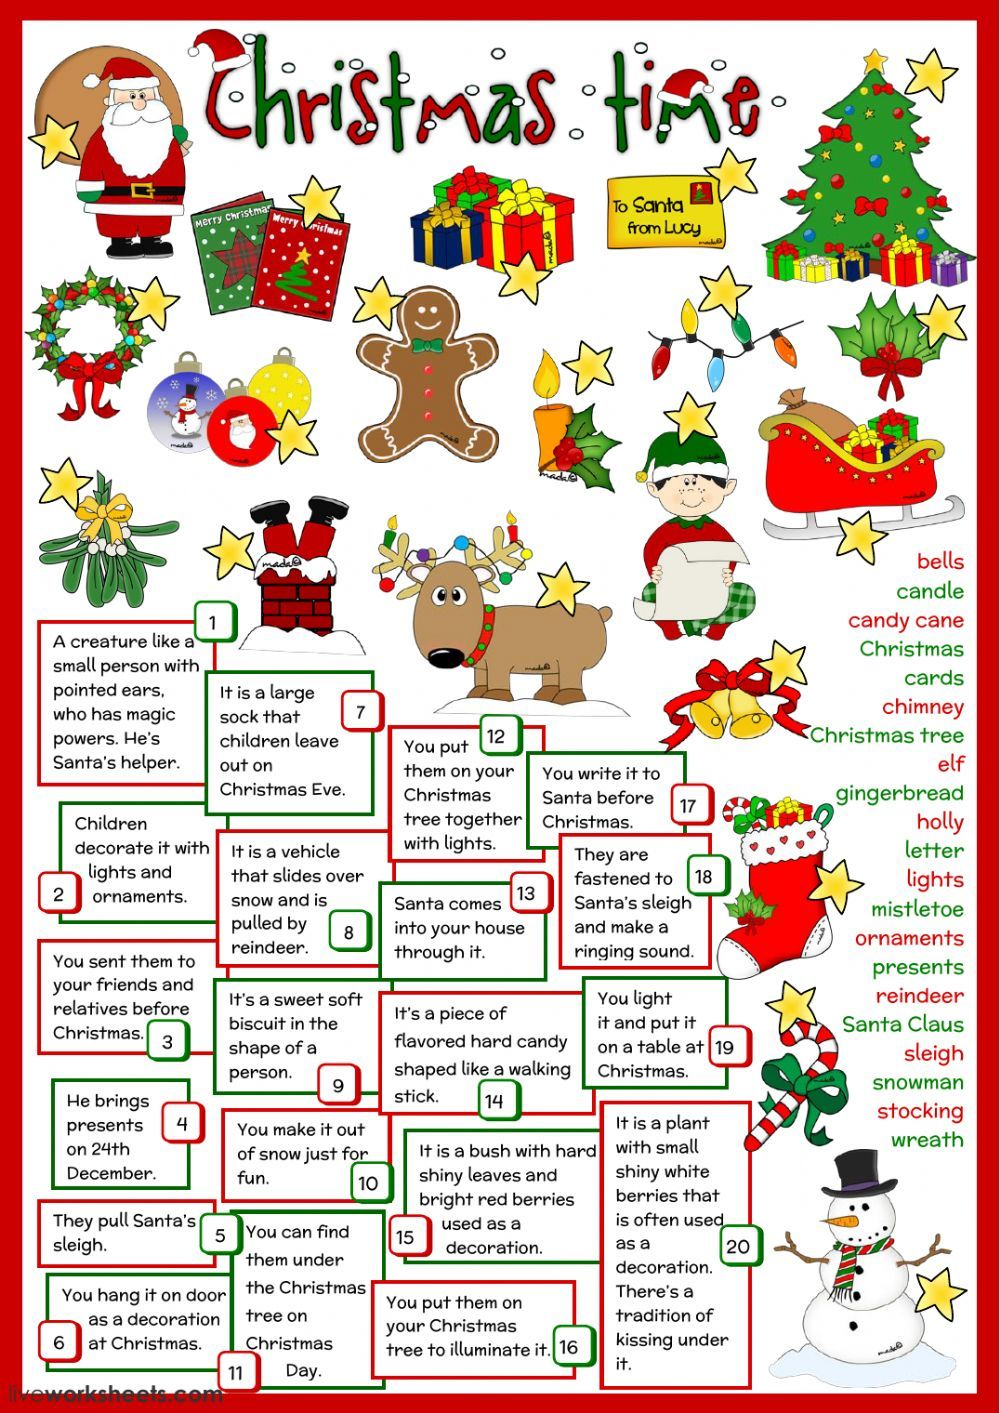 Christmas interactive and downloadable worksheet. You can